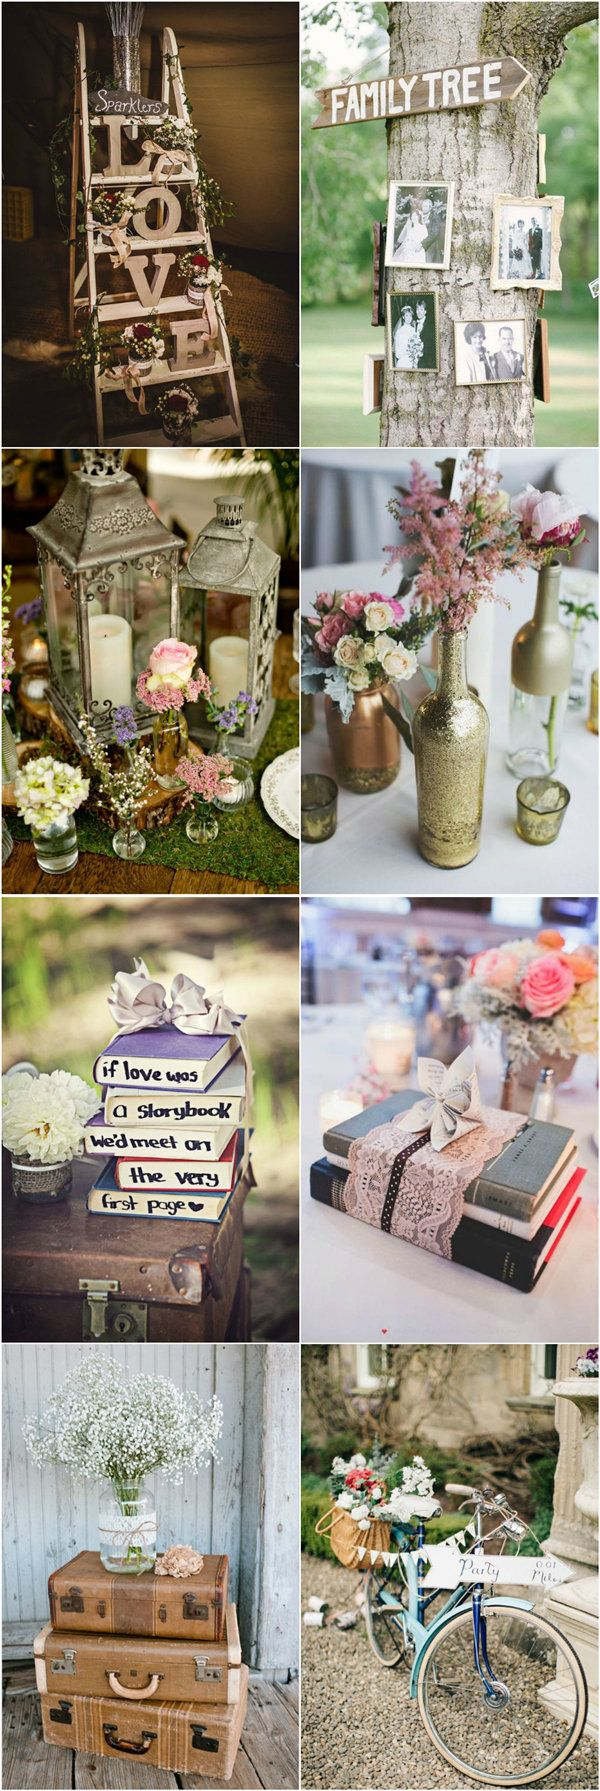 shabby chic vinate wedding decorations and centerpieces